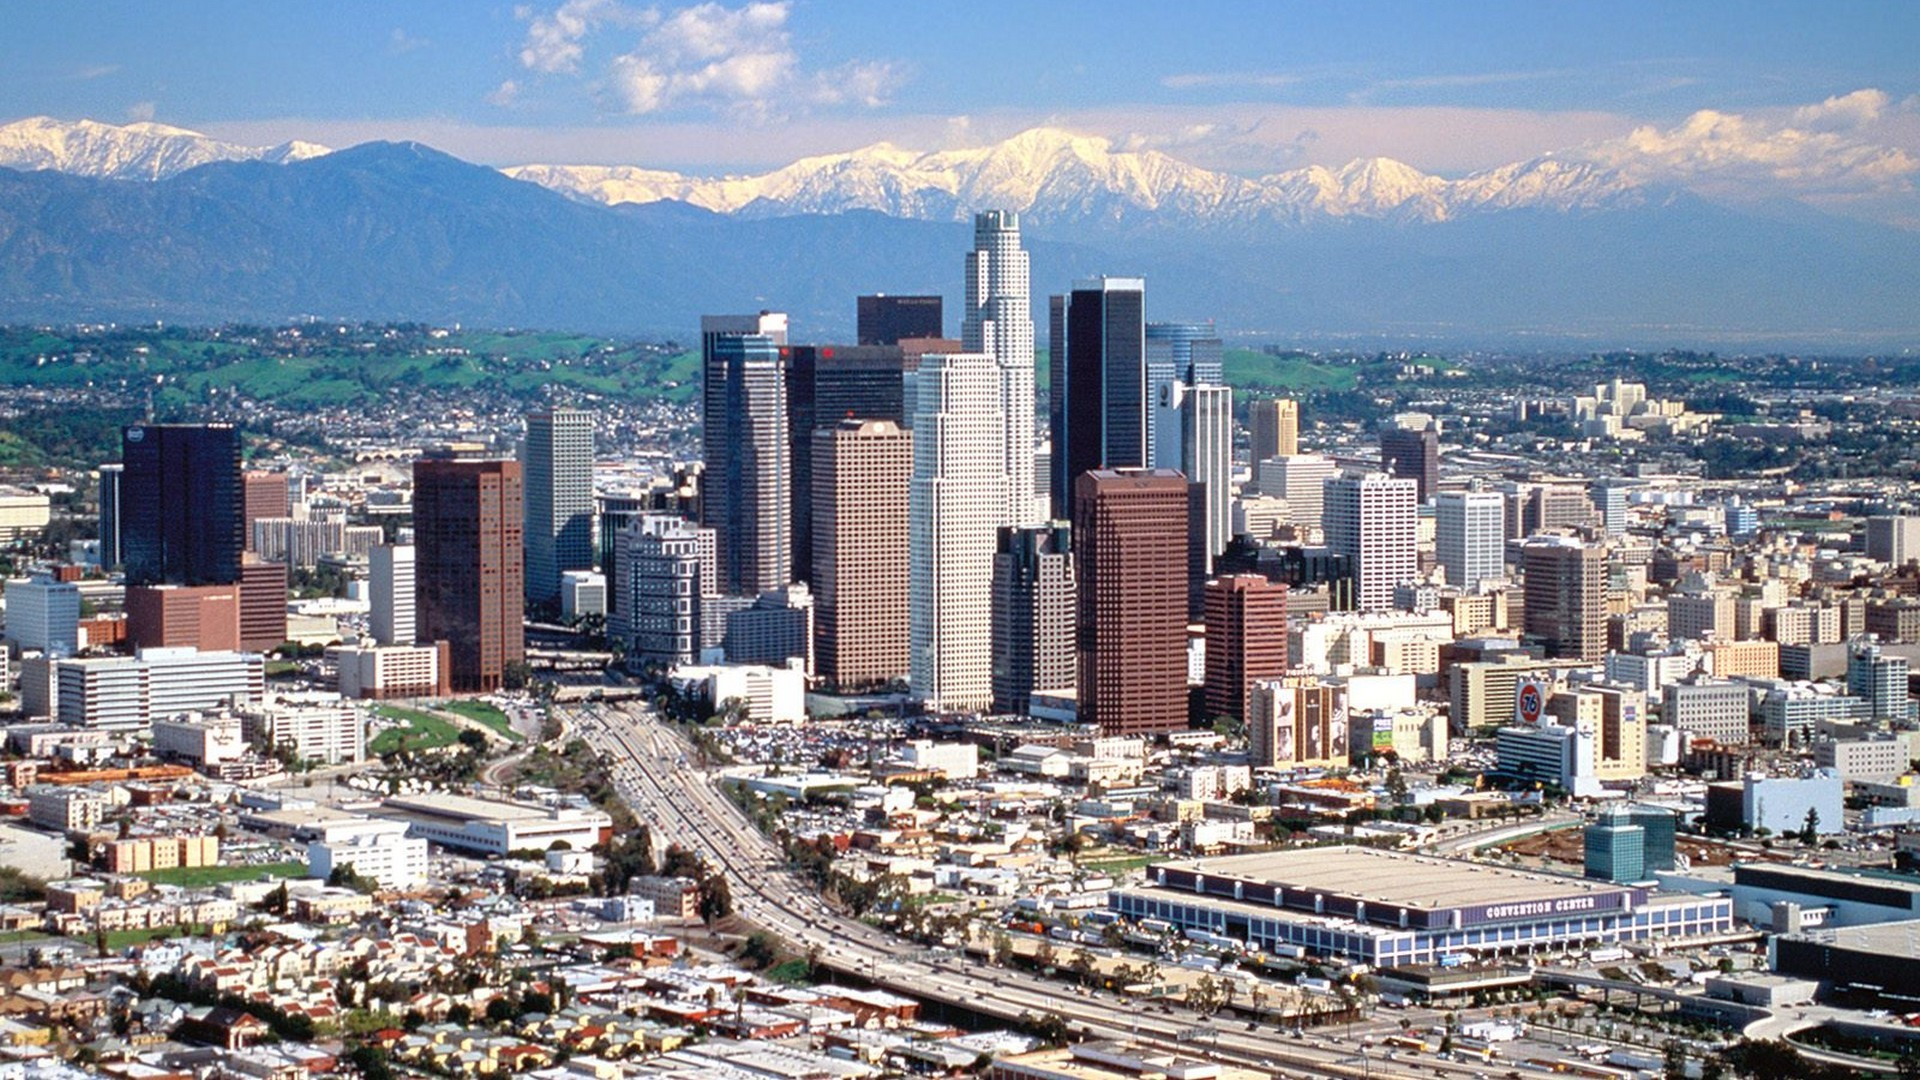 Los angeles hd wallpapers 1080p wallpapersafari for Is la a city